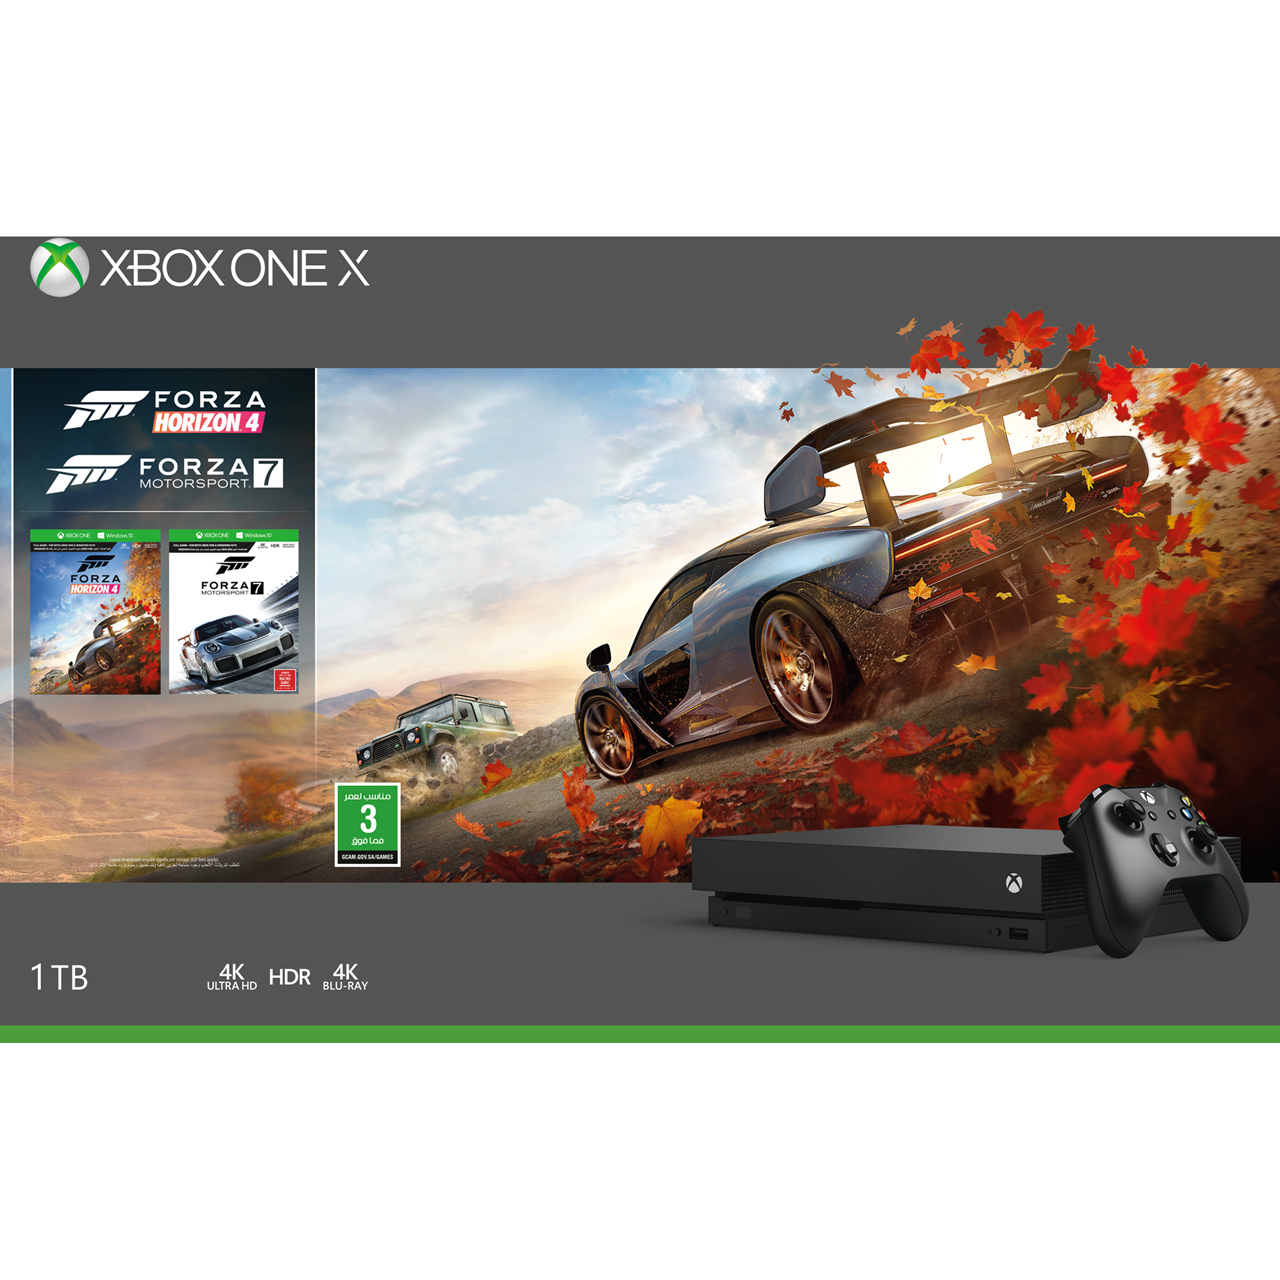 Details about Xbox One X 1TB with Digital Download Codes for Forza Horizon  4 and Forza